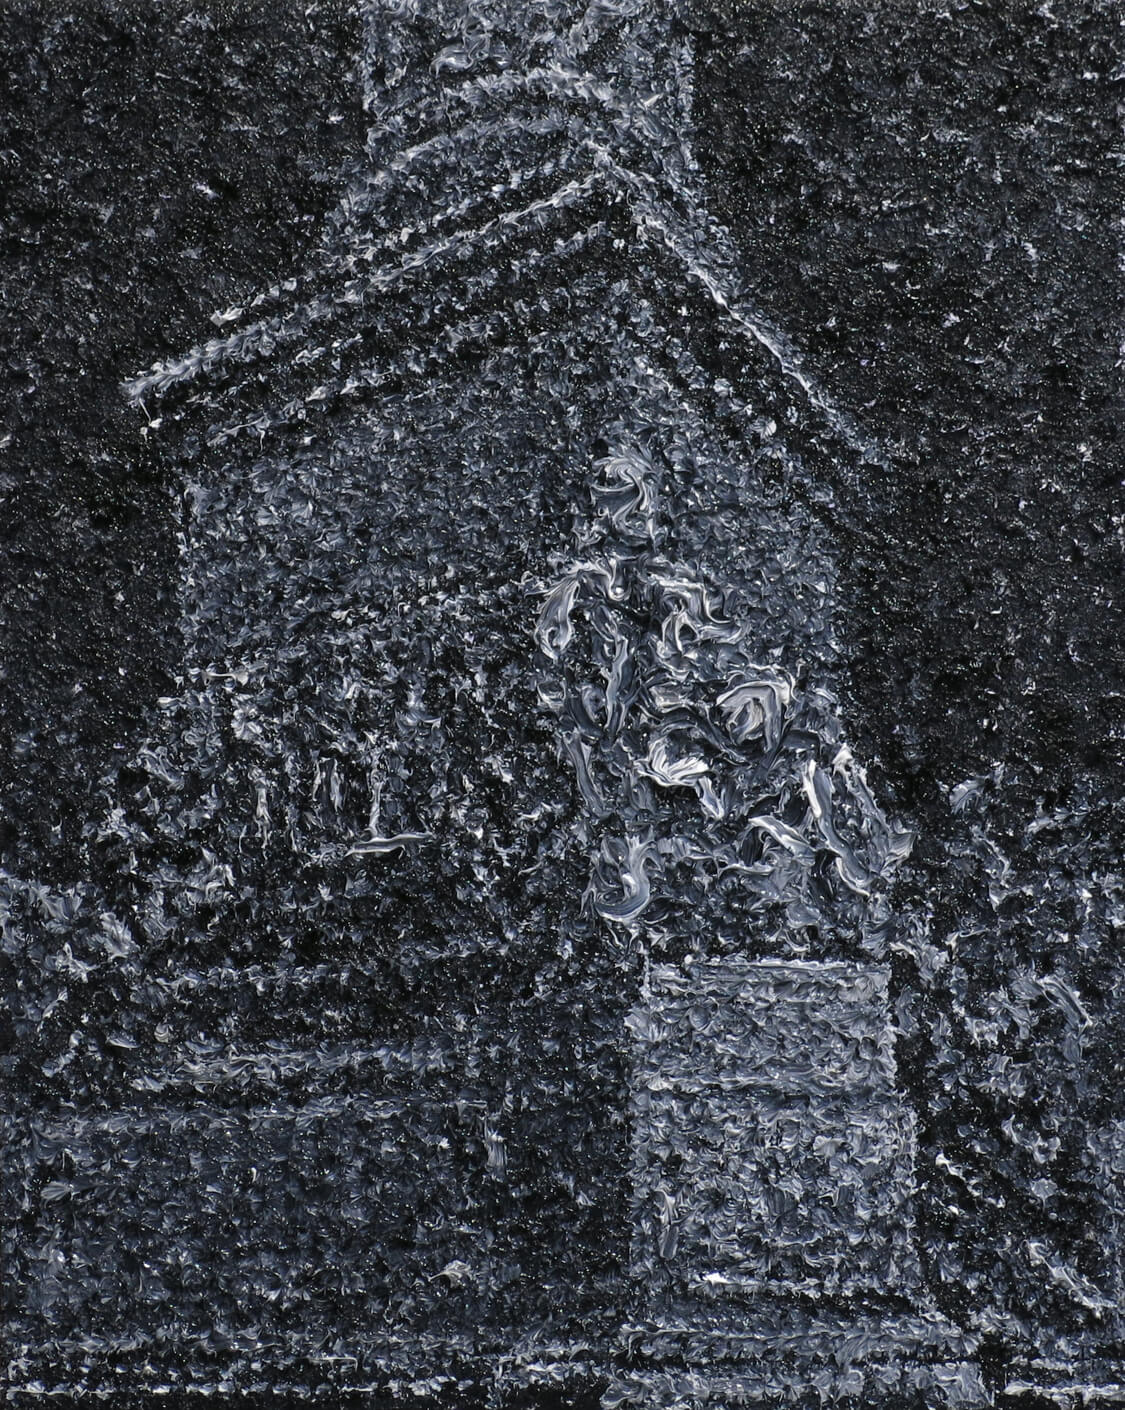 Monument II - Oil on Canvas, 48 x 38 cm, 2013